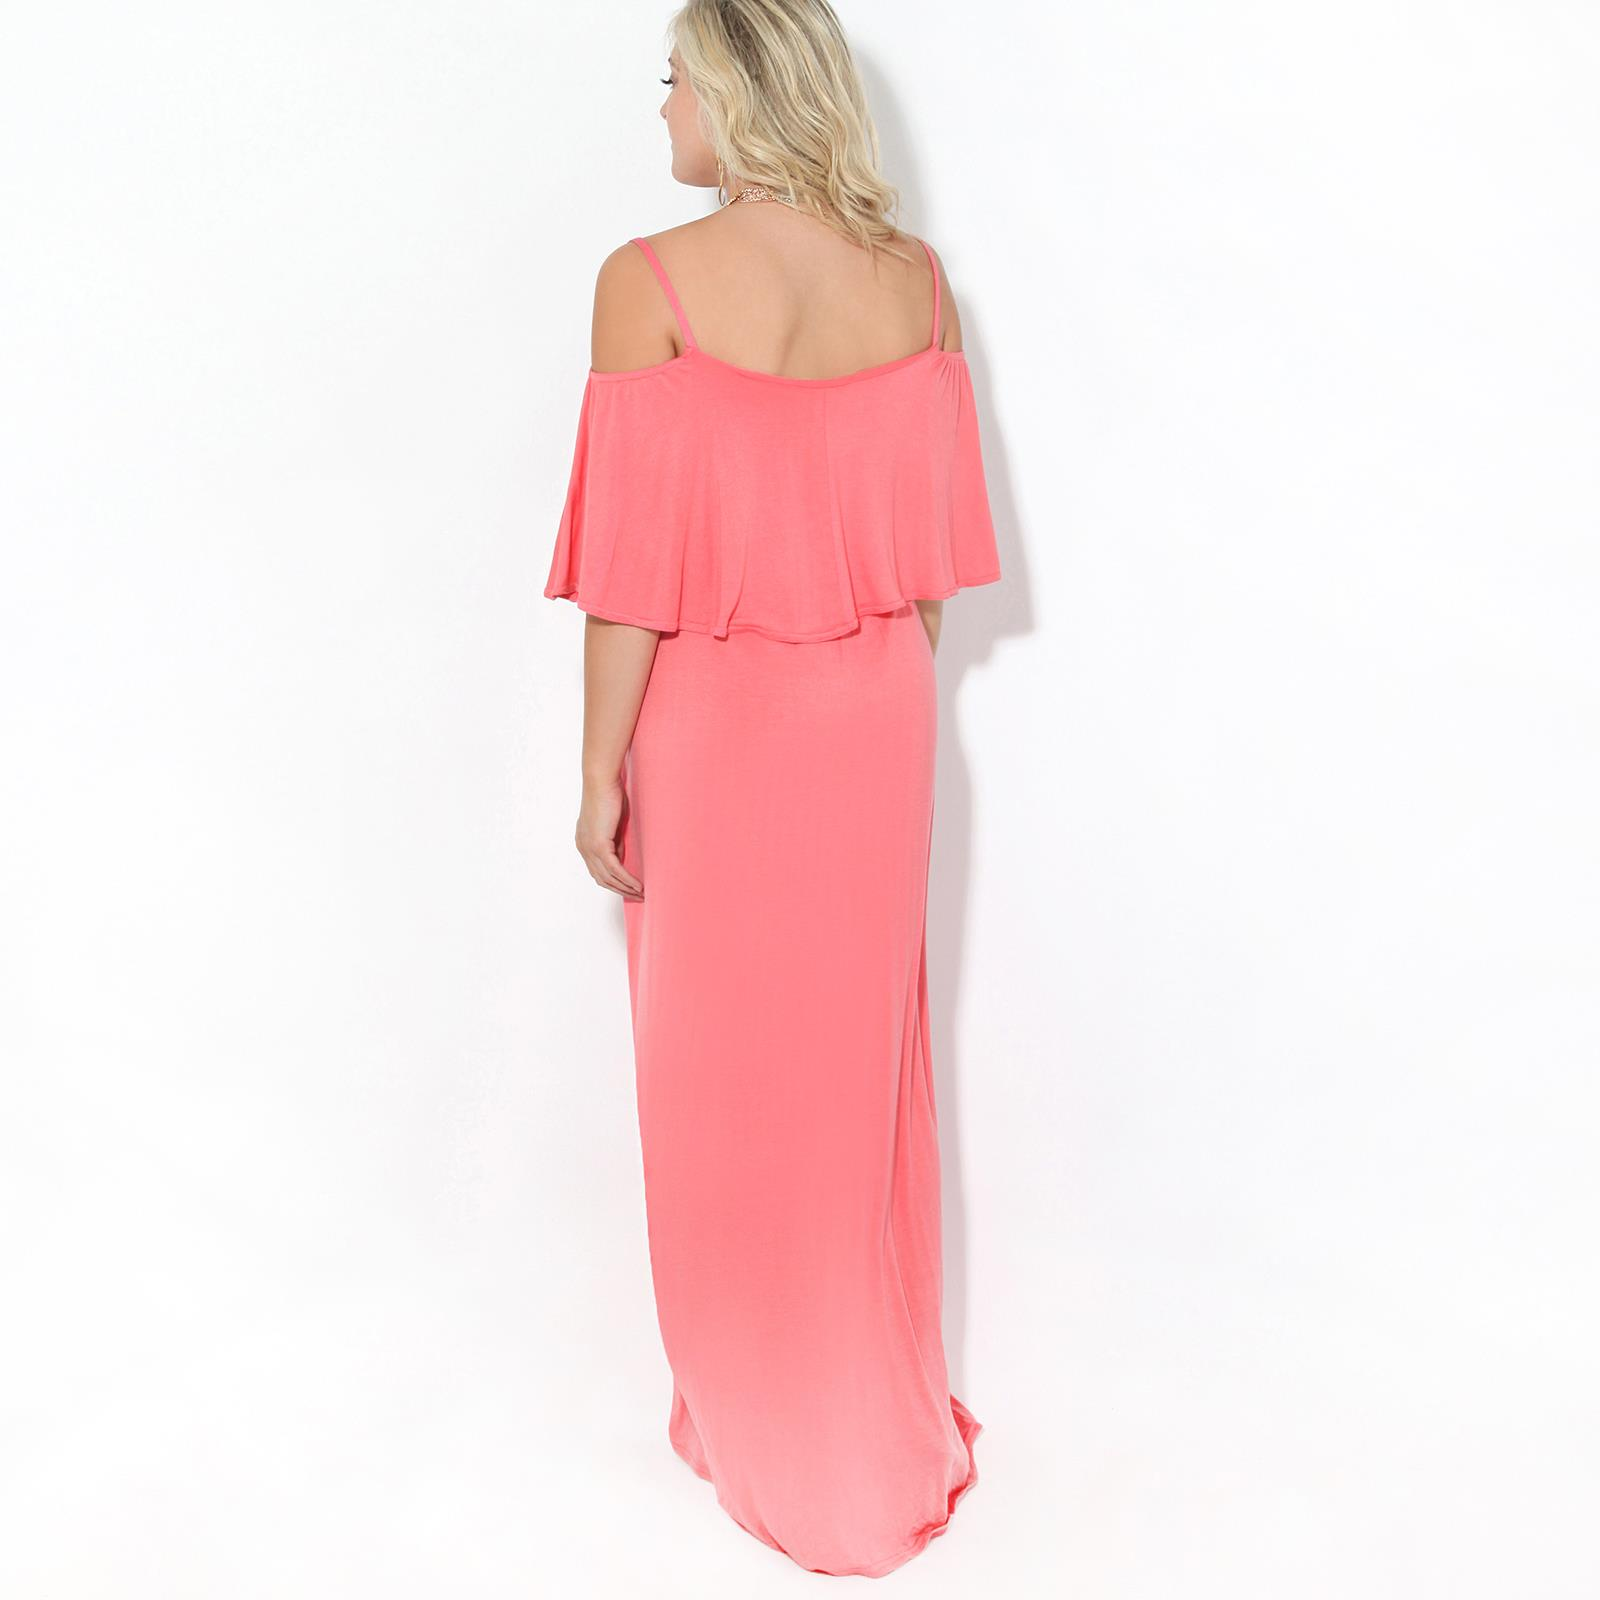 Womens-Ladies-Maxi-Dress-Sundress-Cold-Off-Shoulder-Strappy-Ruffle-Jersey-Summer thumbnail 4